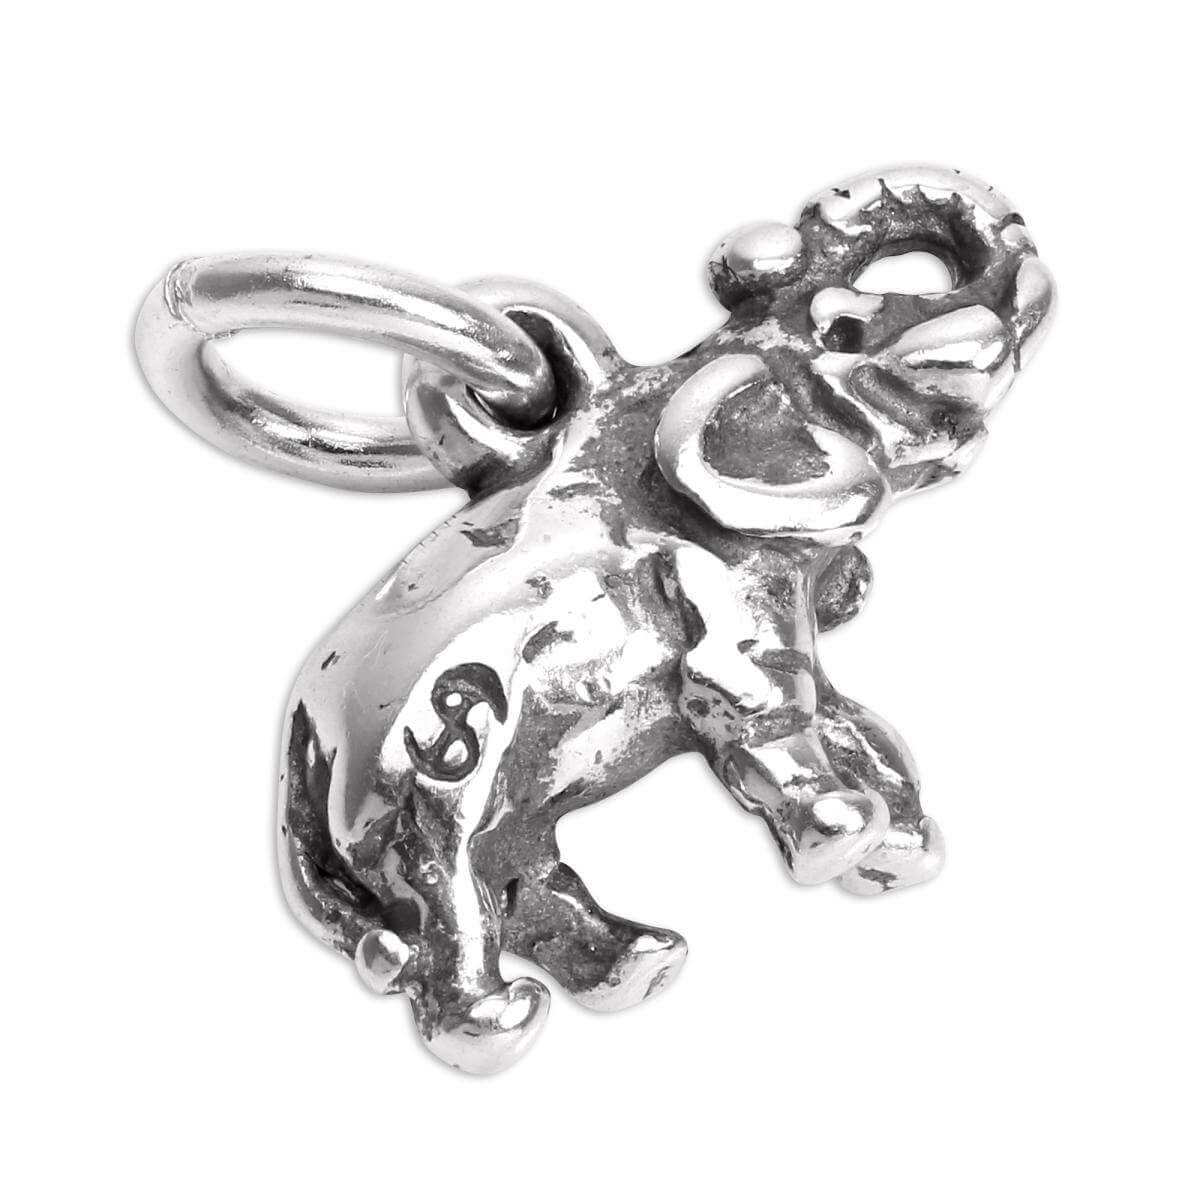 Small Sterling Silver Elephant Charm